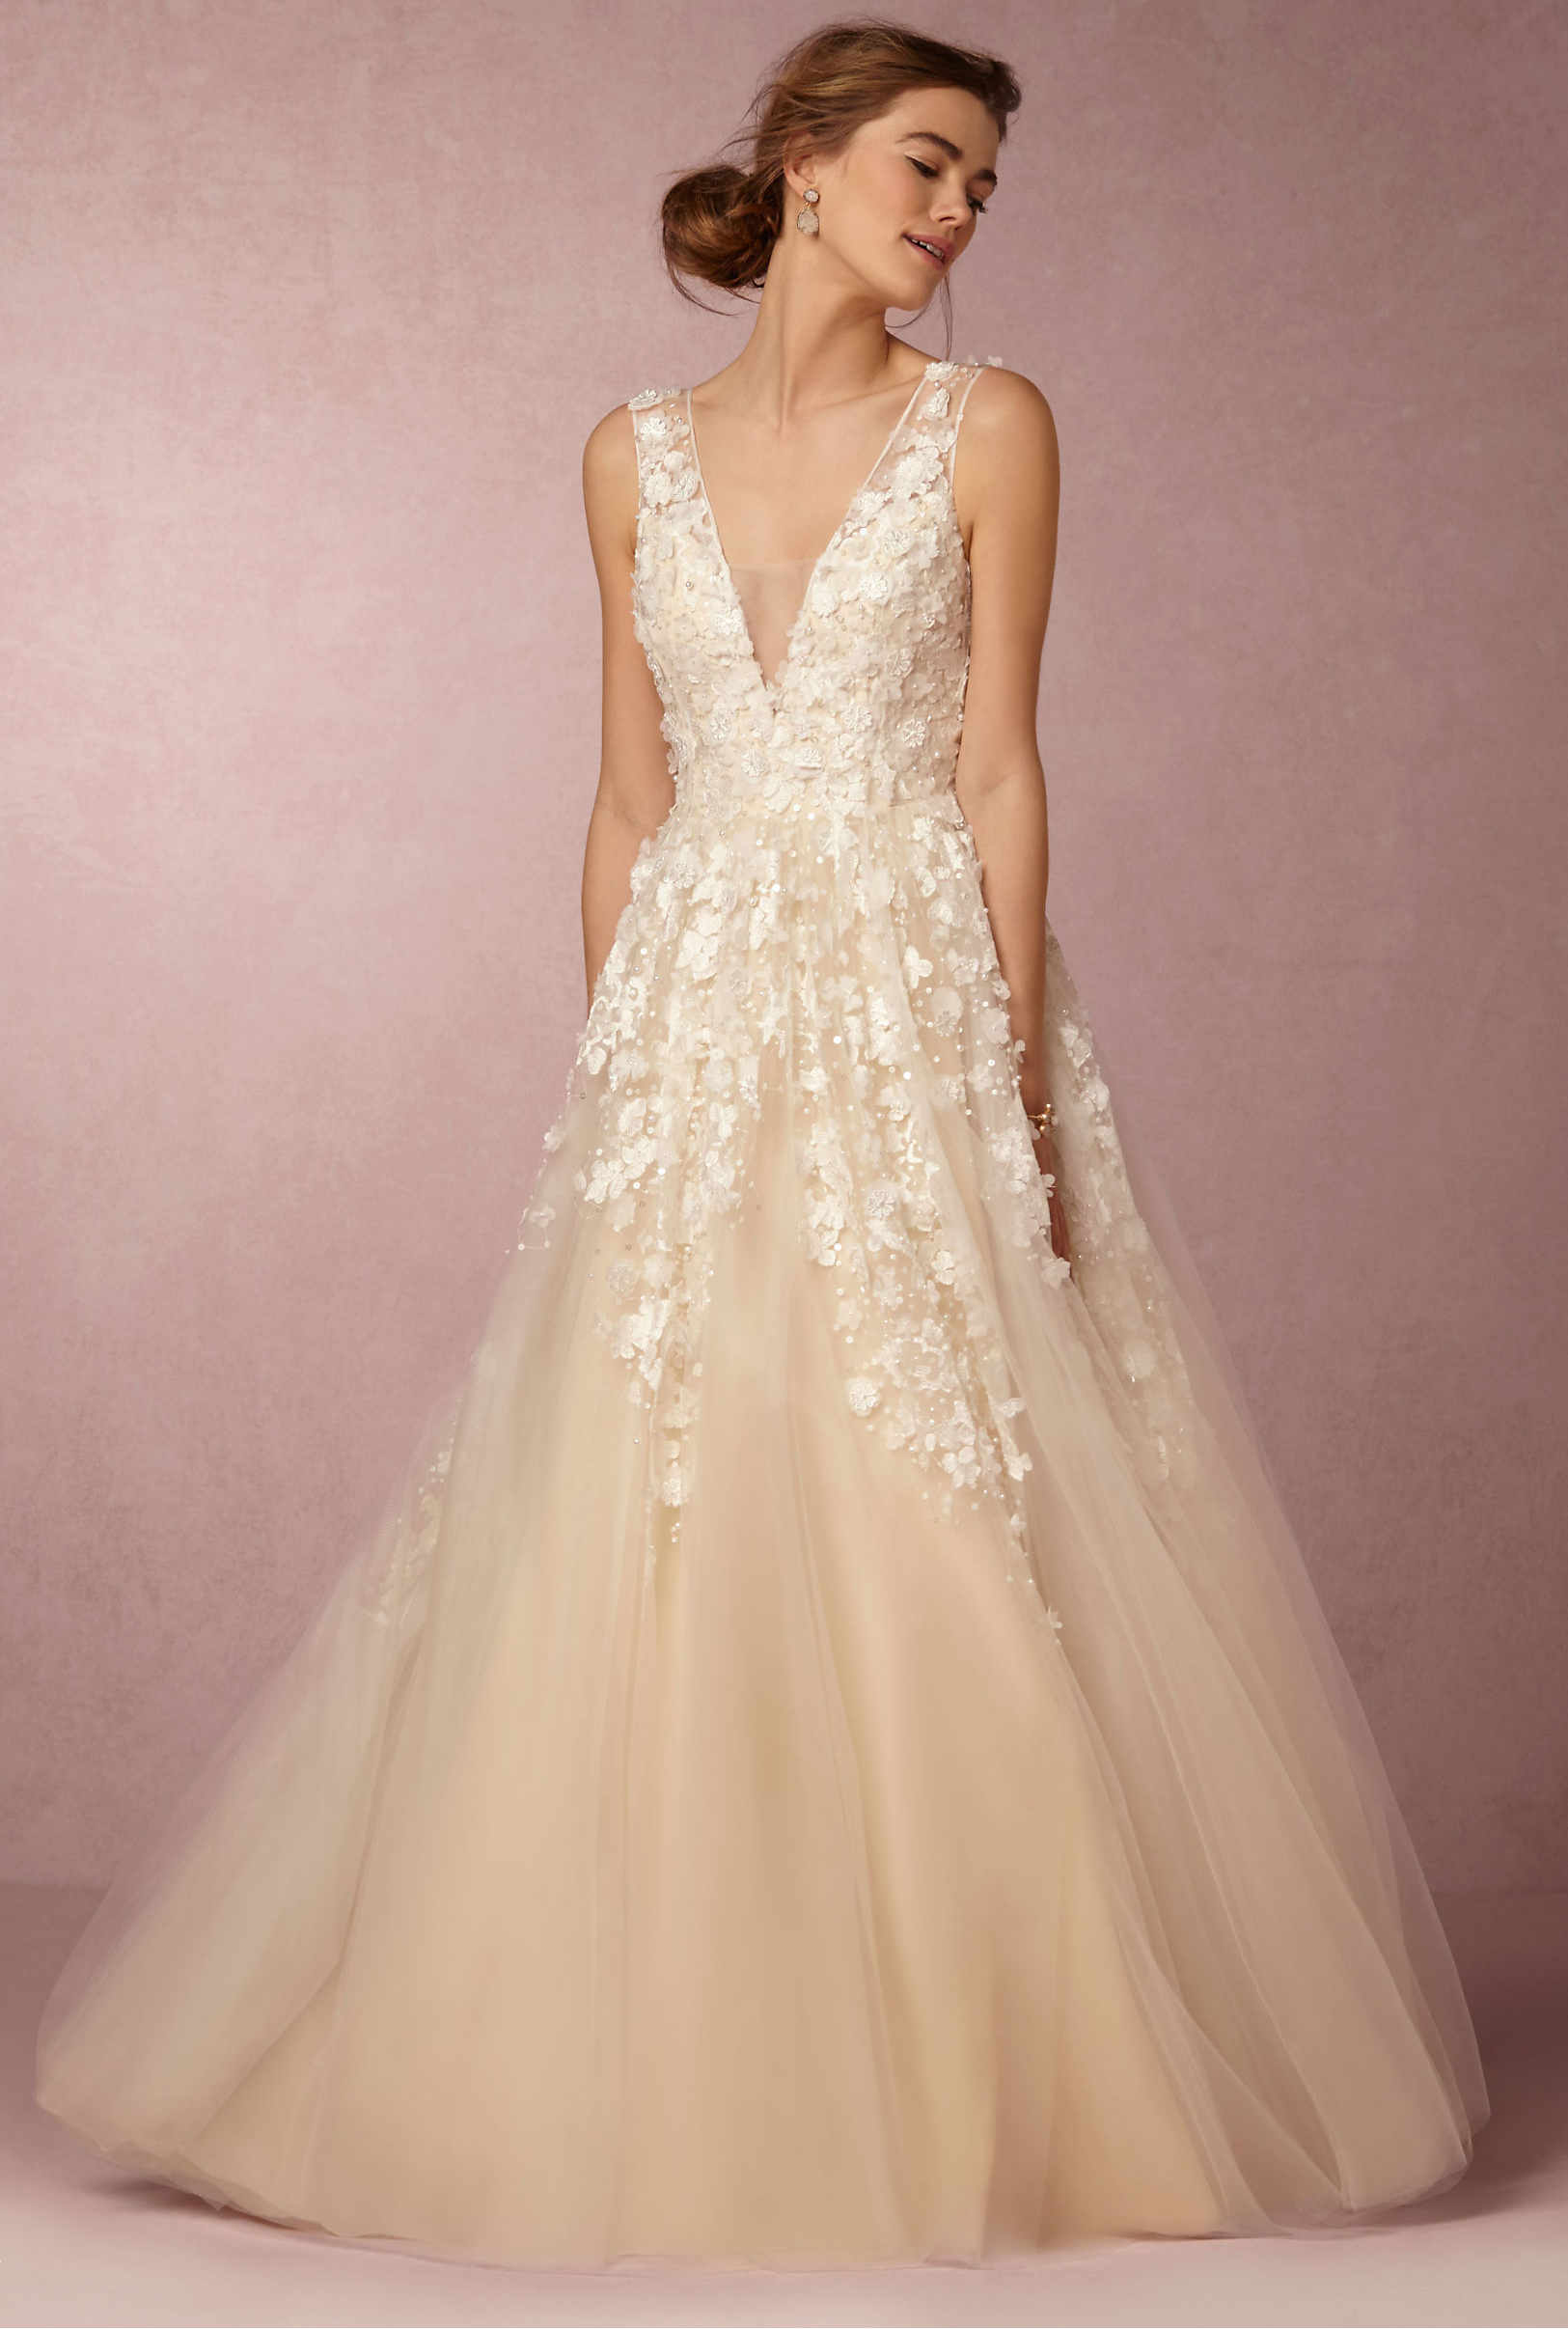 Bridal Gowns With Flowers : Best winter wedding dresses for